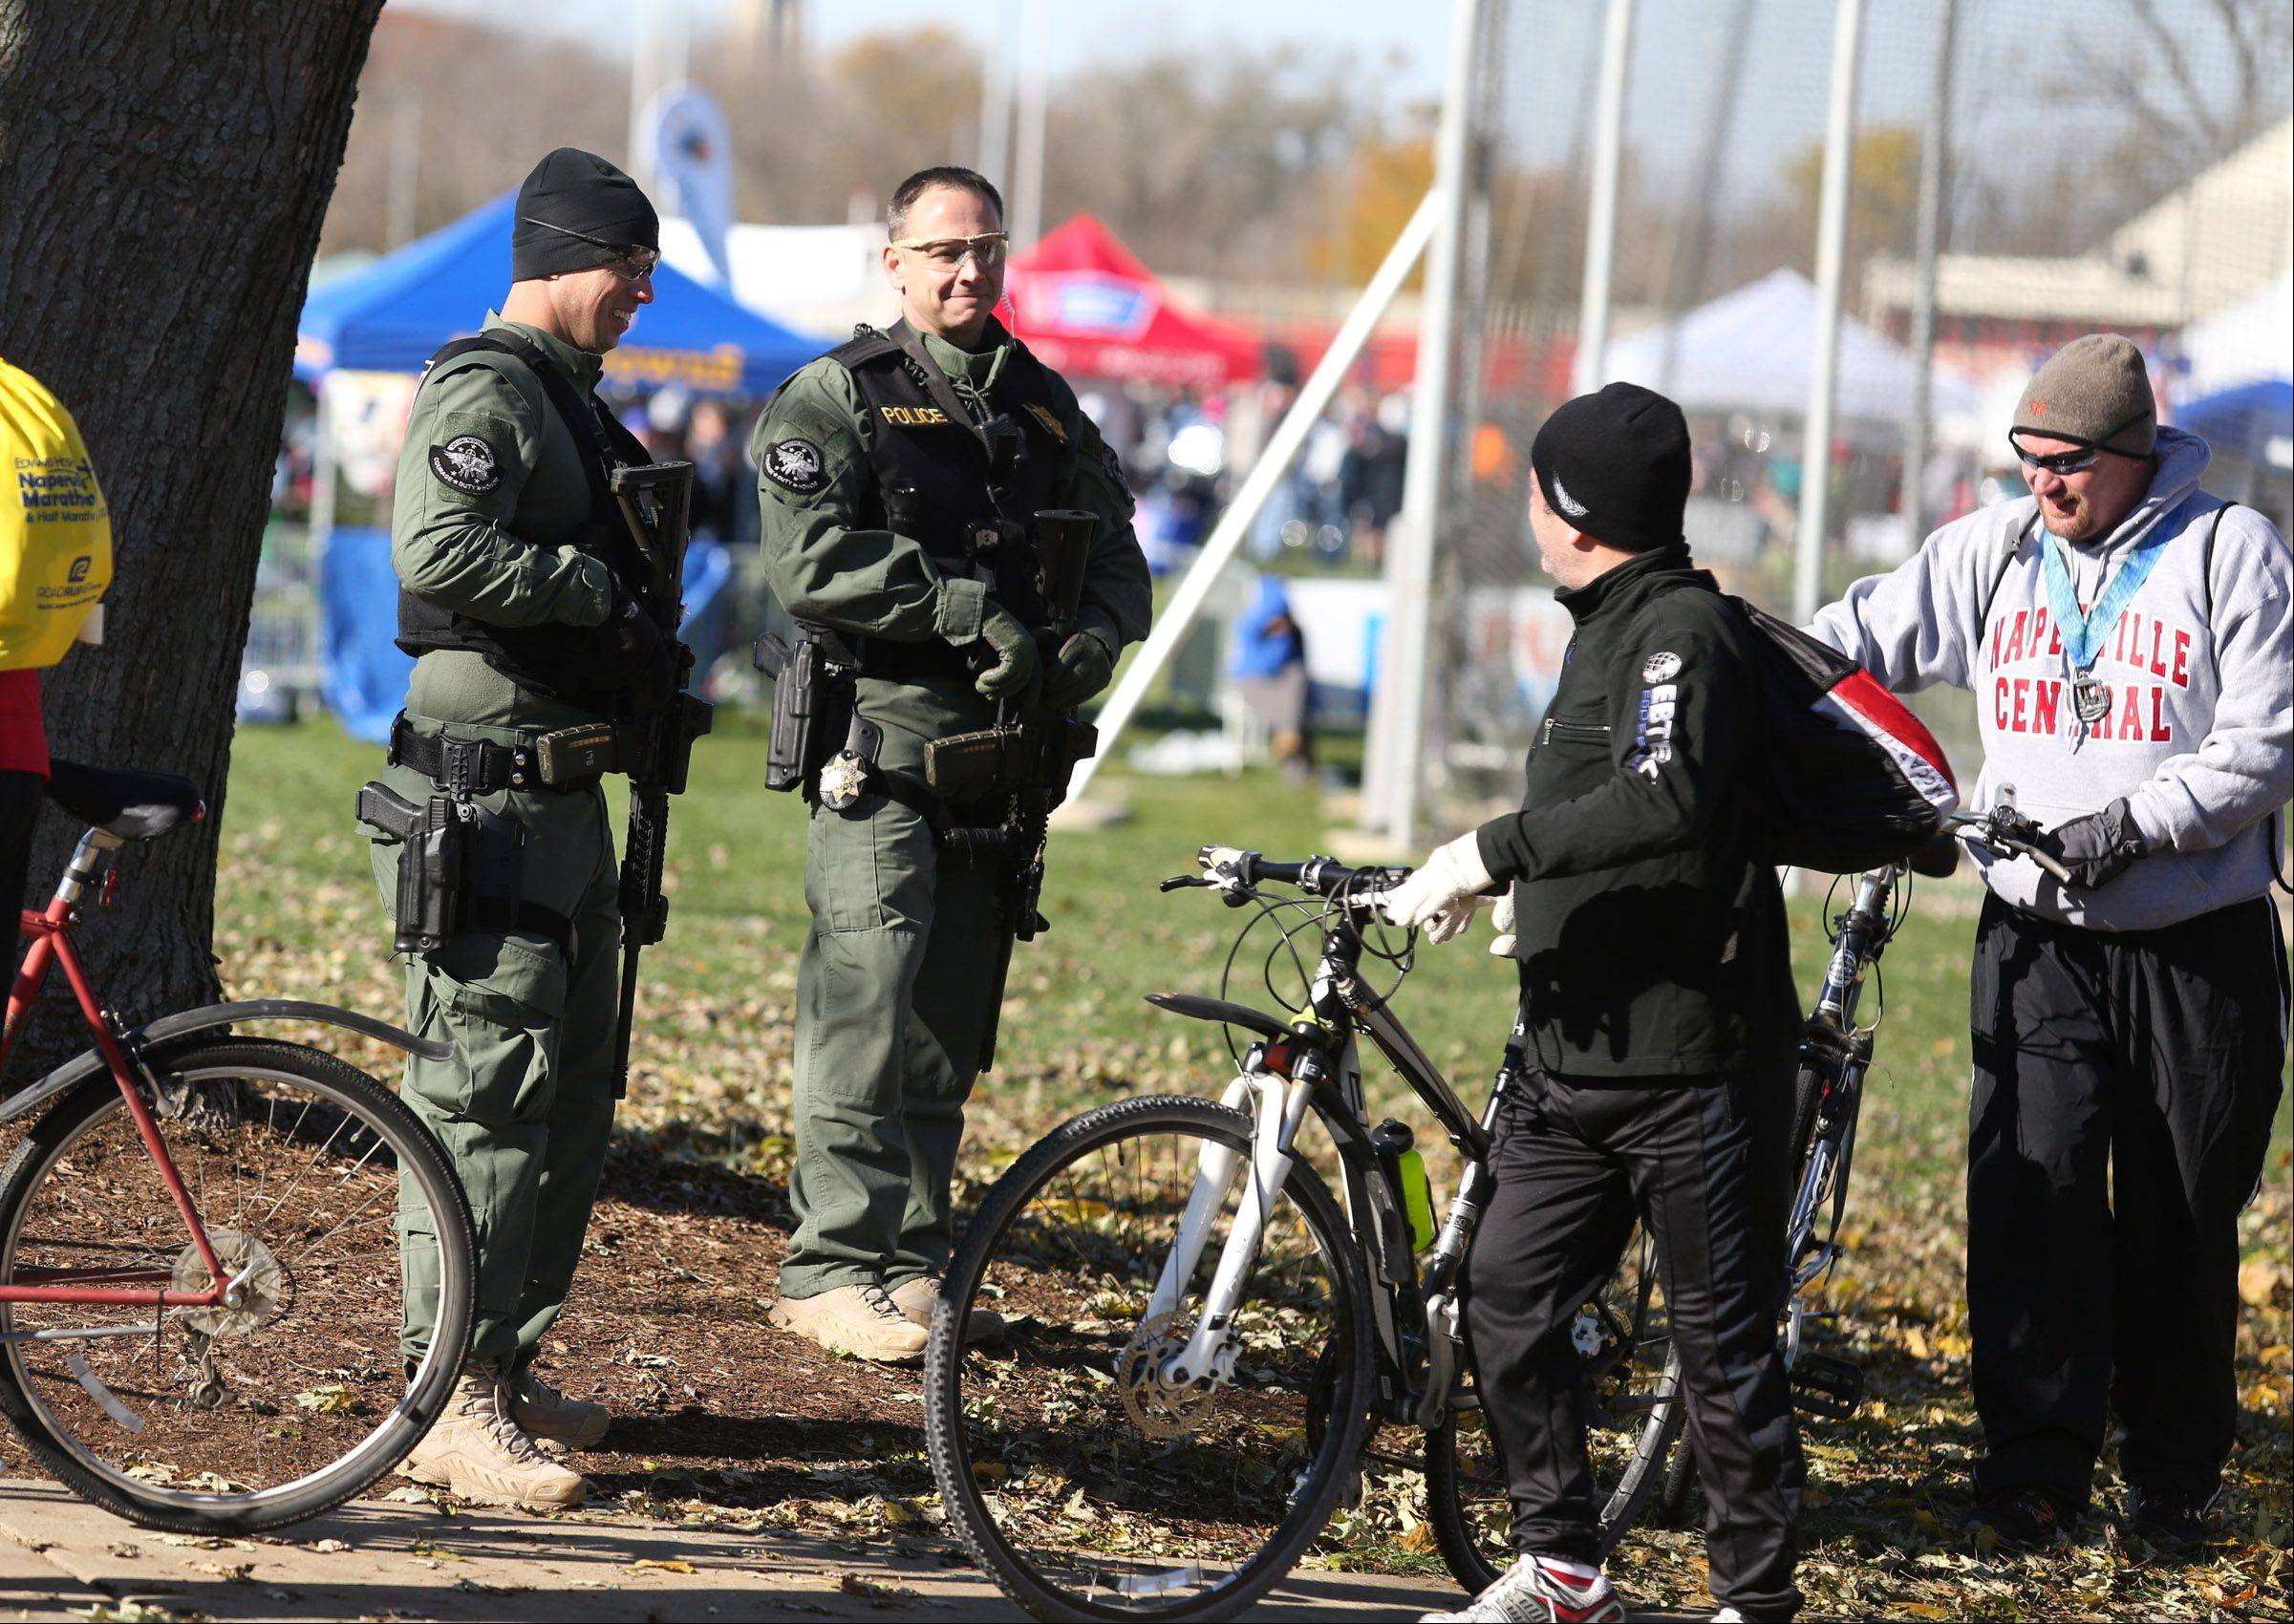 Cyclist talk to police officers near the finish of the Edward Hospital Naperville Marathon on Sunday, November 10, 2013.